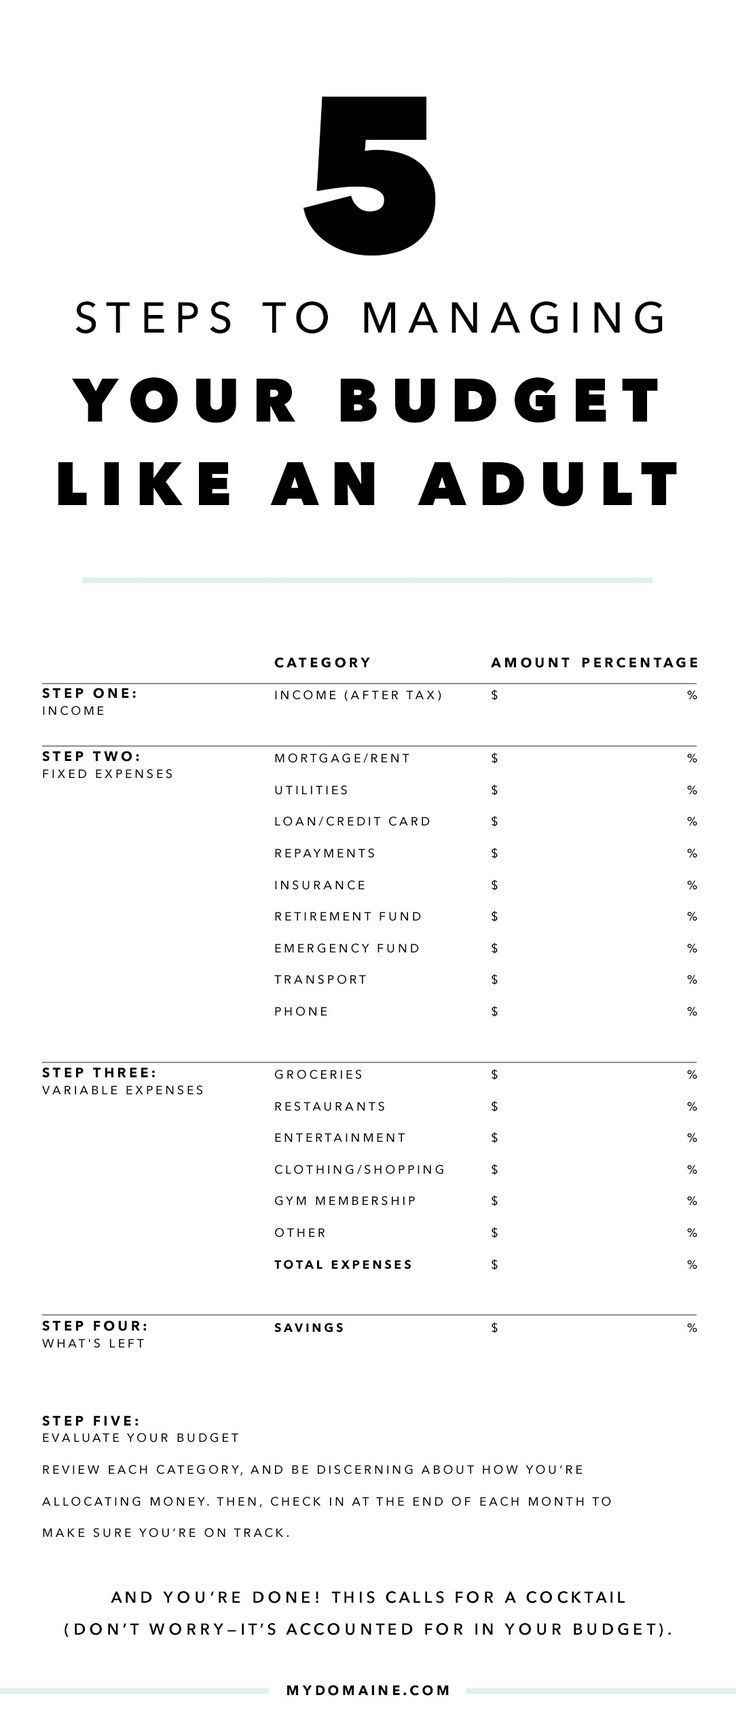 Worksheets Kiplinger Budget Worksheet everything you need to know manage your finances like an adult via mydomaine budget spreadsheetexcel